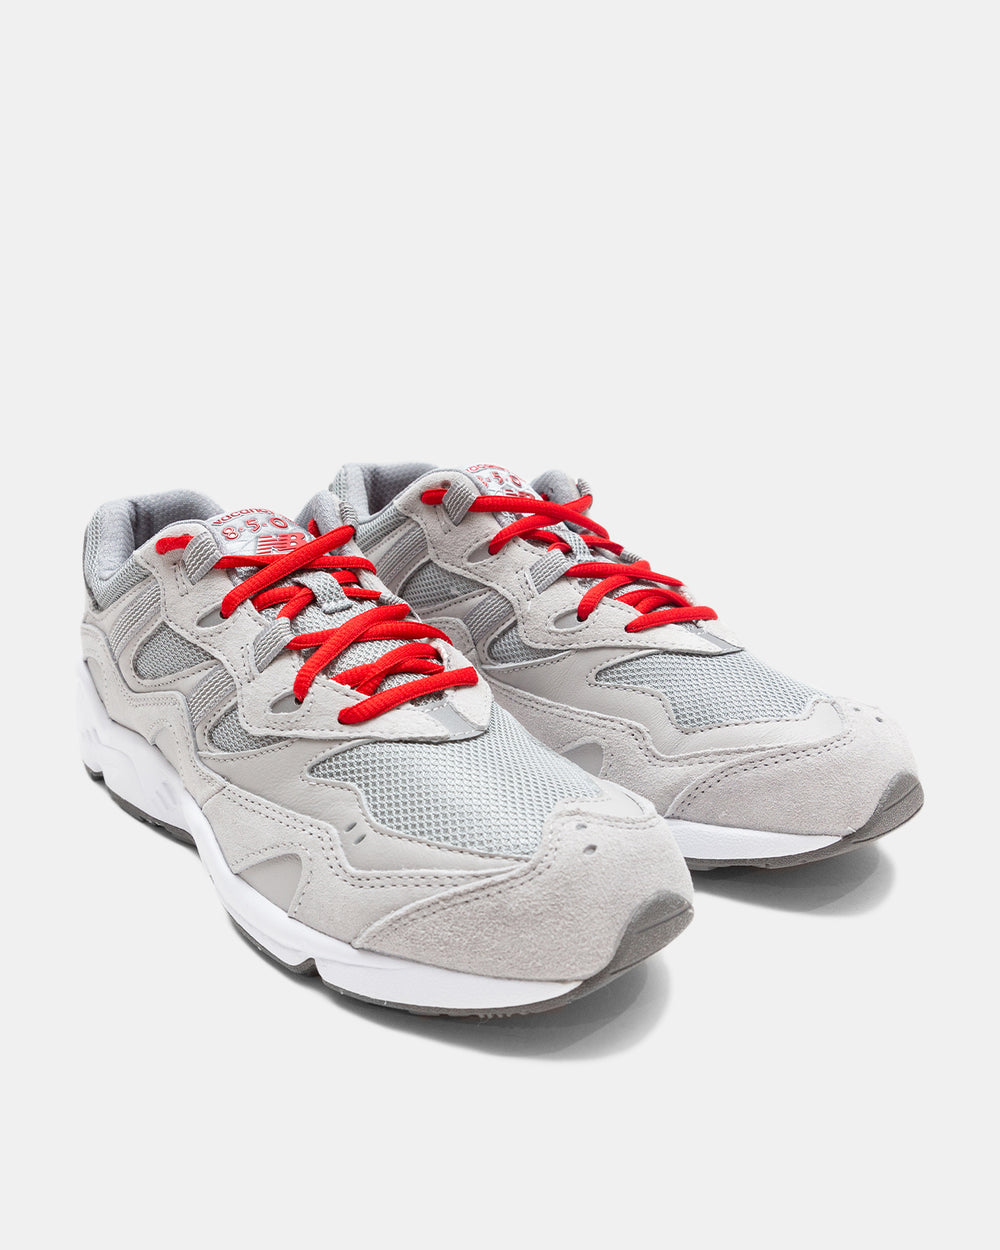 New Balance - New Balance x No Vacancy Inn 850 (Grey | Red)